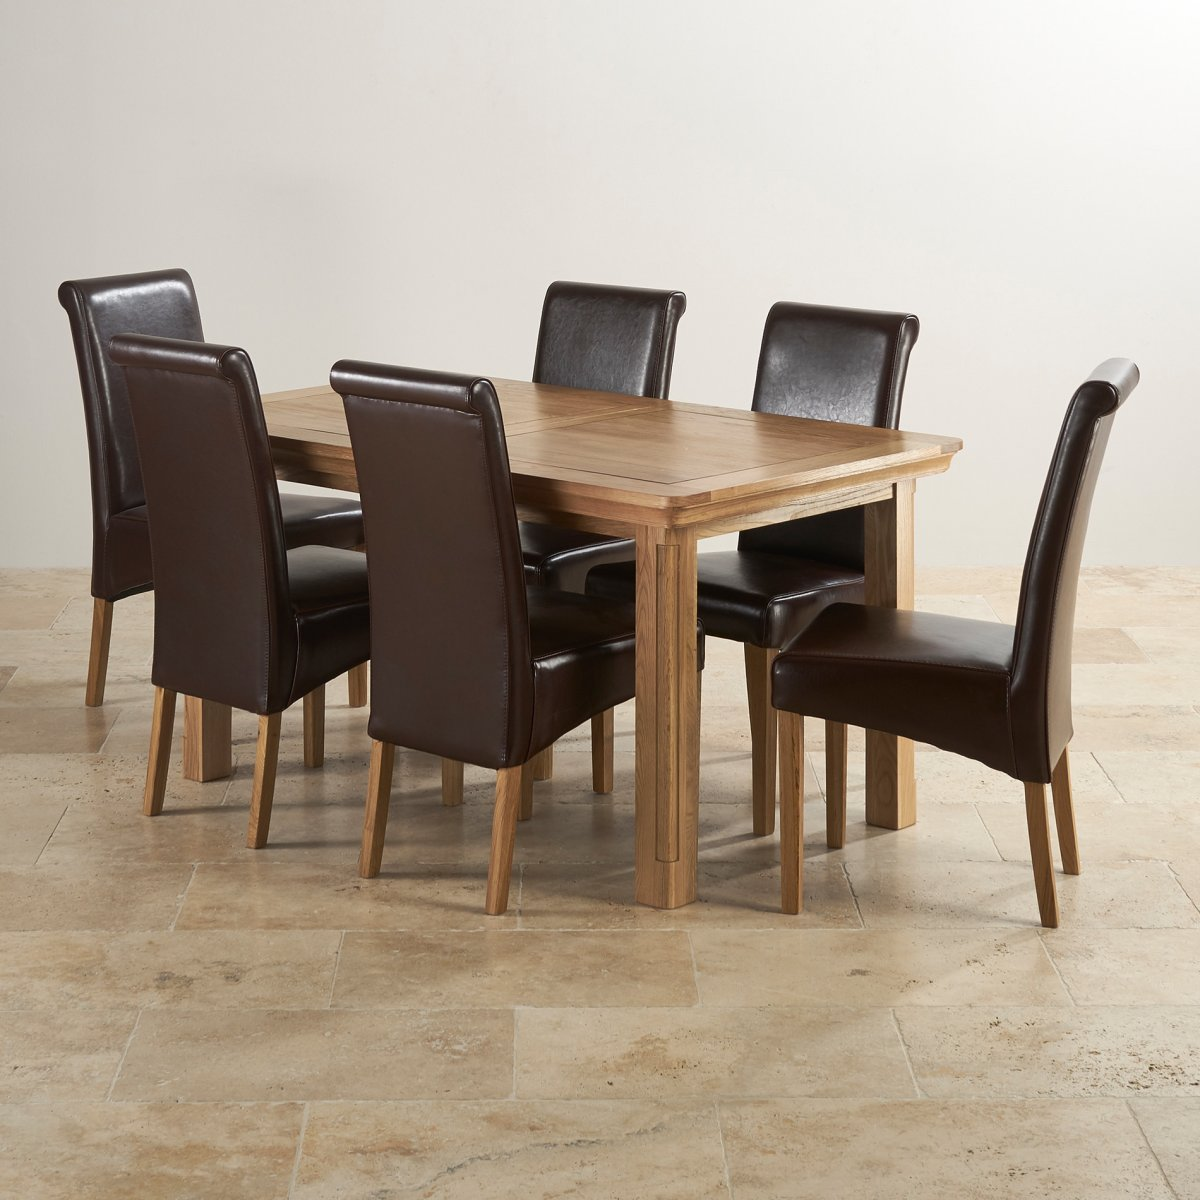 Oak Dining Room Furniture: Canterbury Extending Dining Table + 6 Leather Chairs